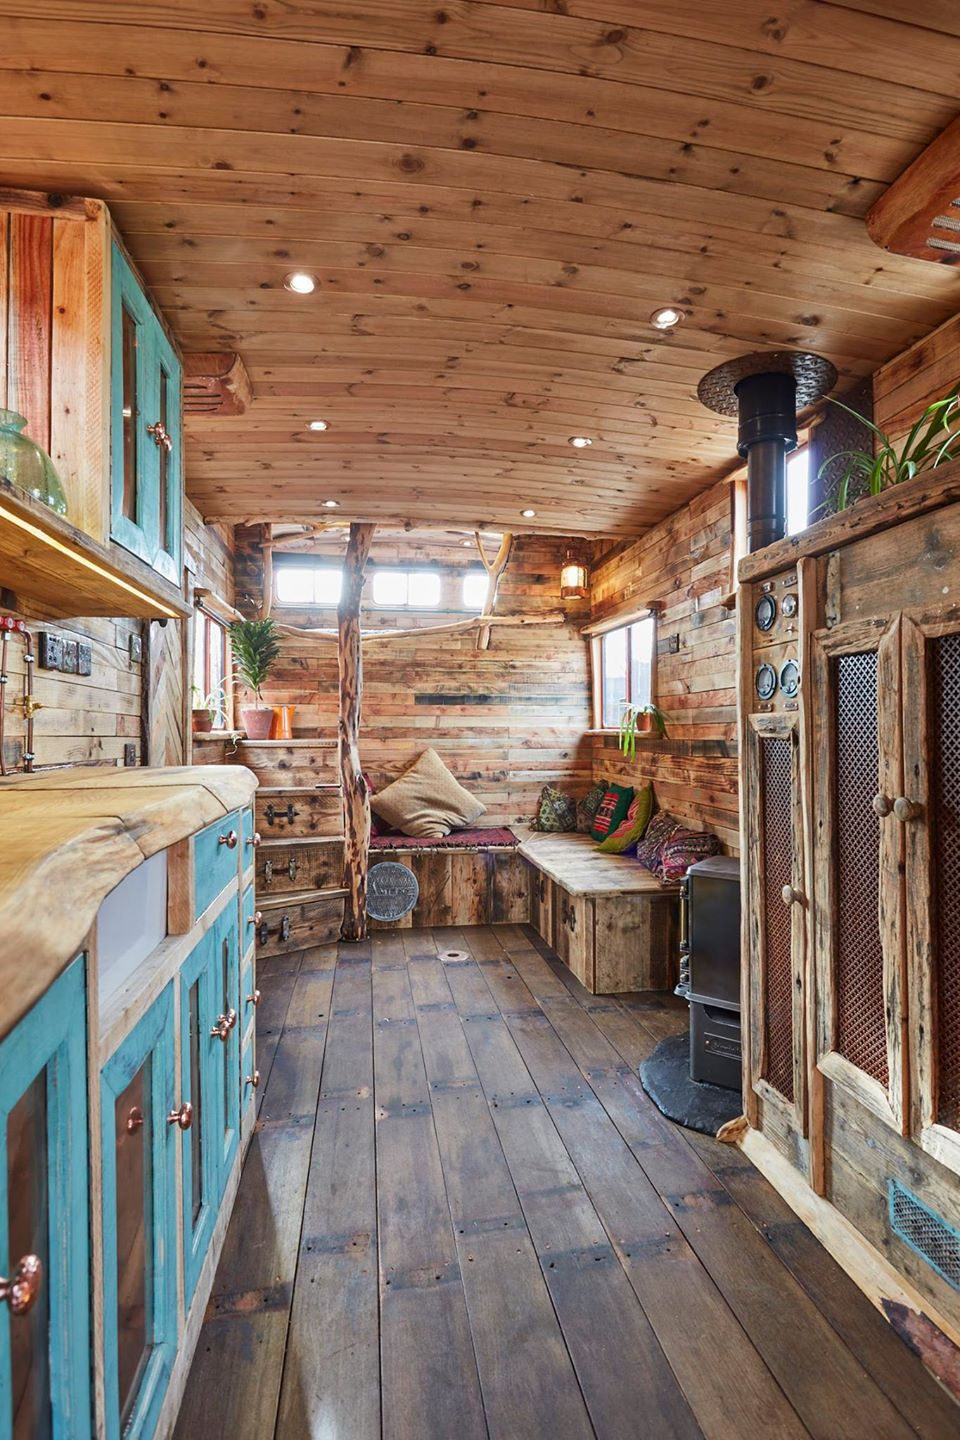 This Old Horse Trailer Was Converted Into A Cozy And Rustic Tiny House